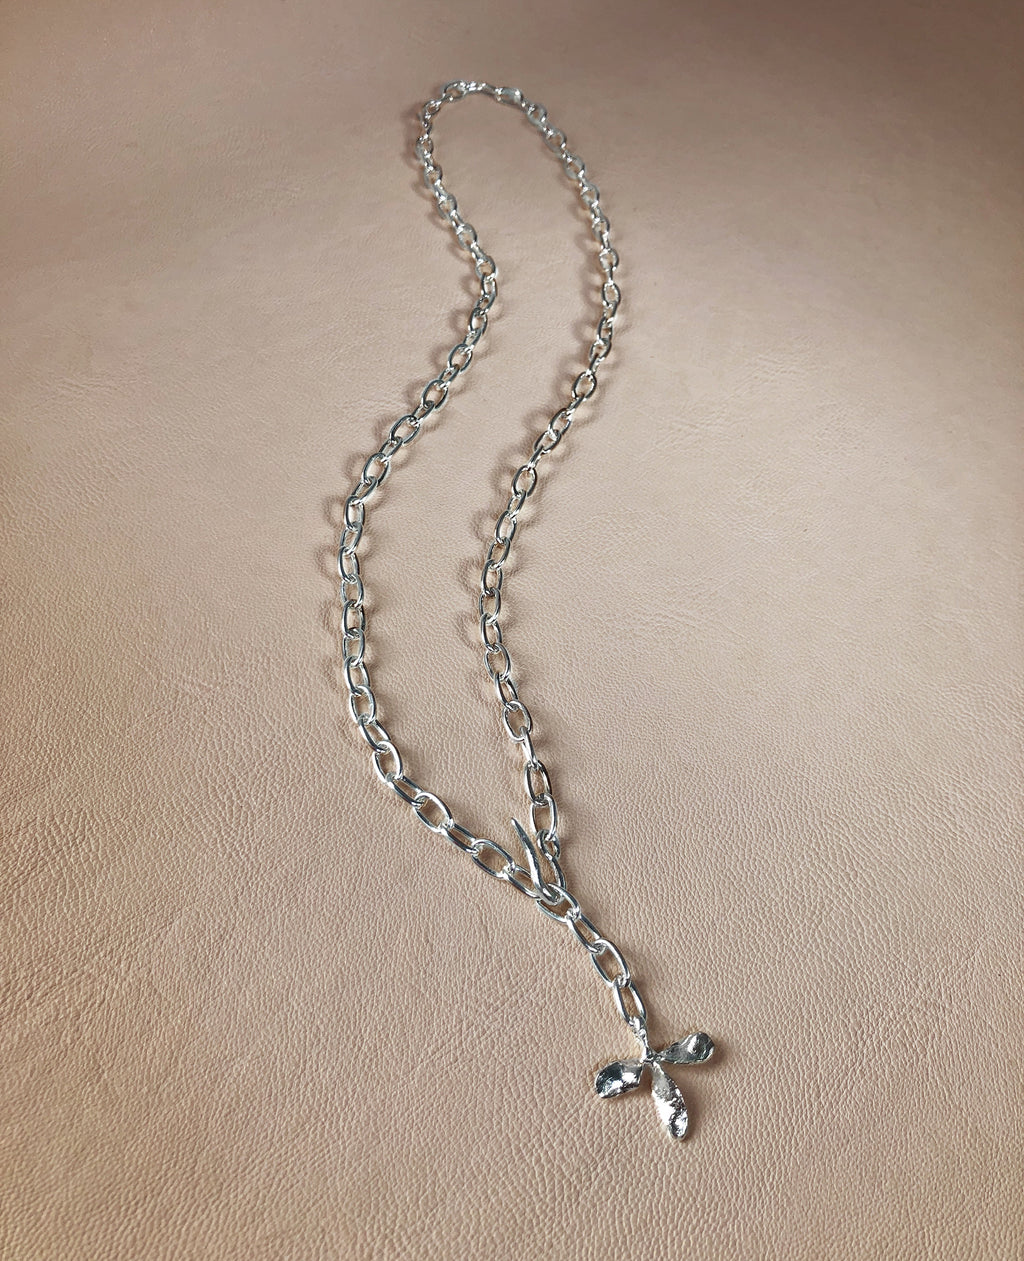 TRIFOLI // silver chain - ORA-C jewelry - handmade jewelry by Montreal based independent designer Caroline Pham